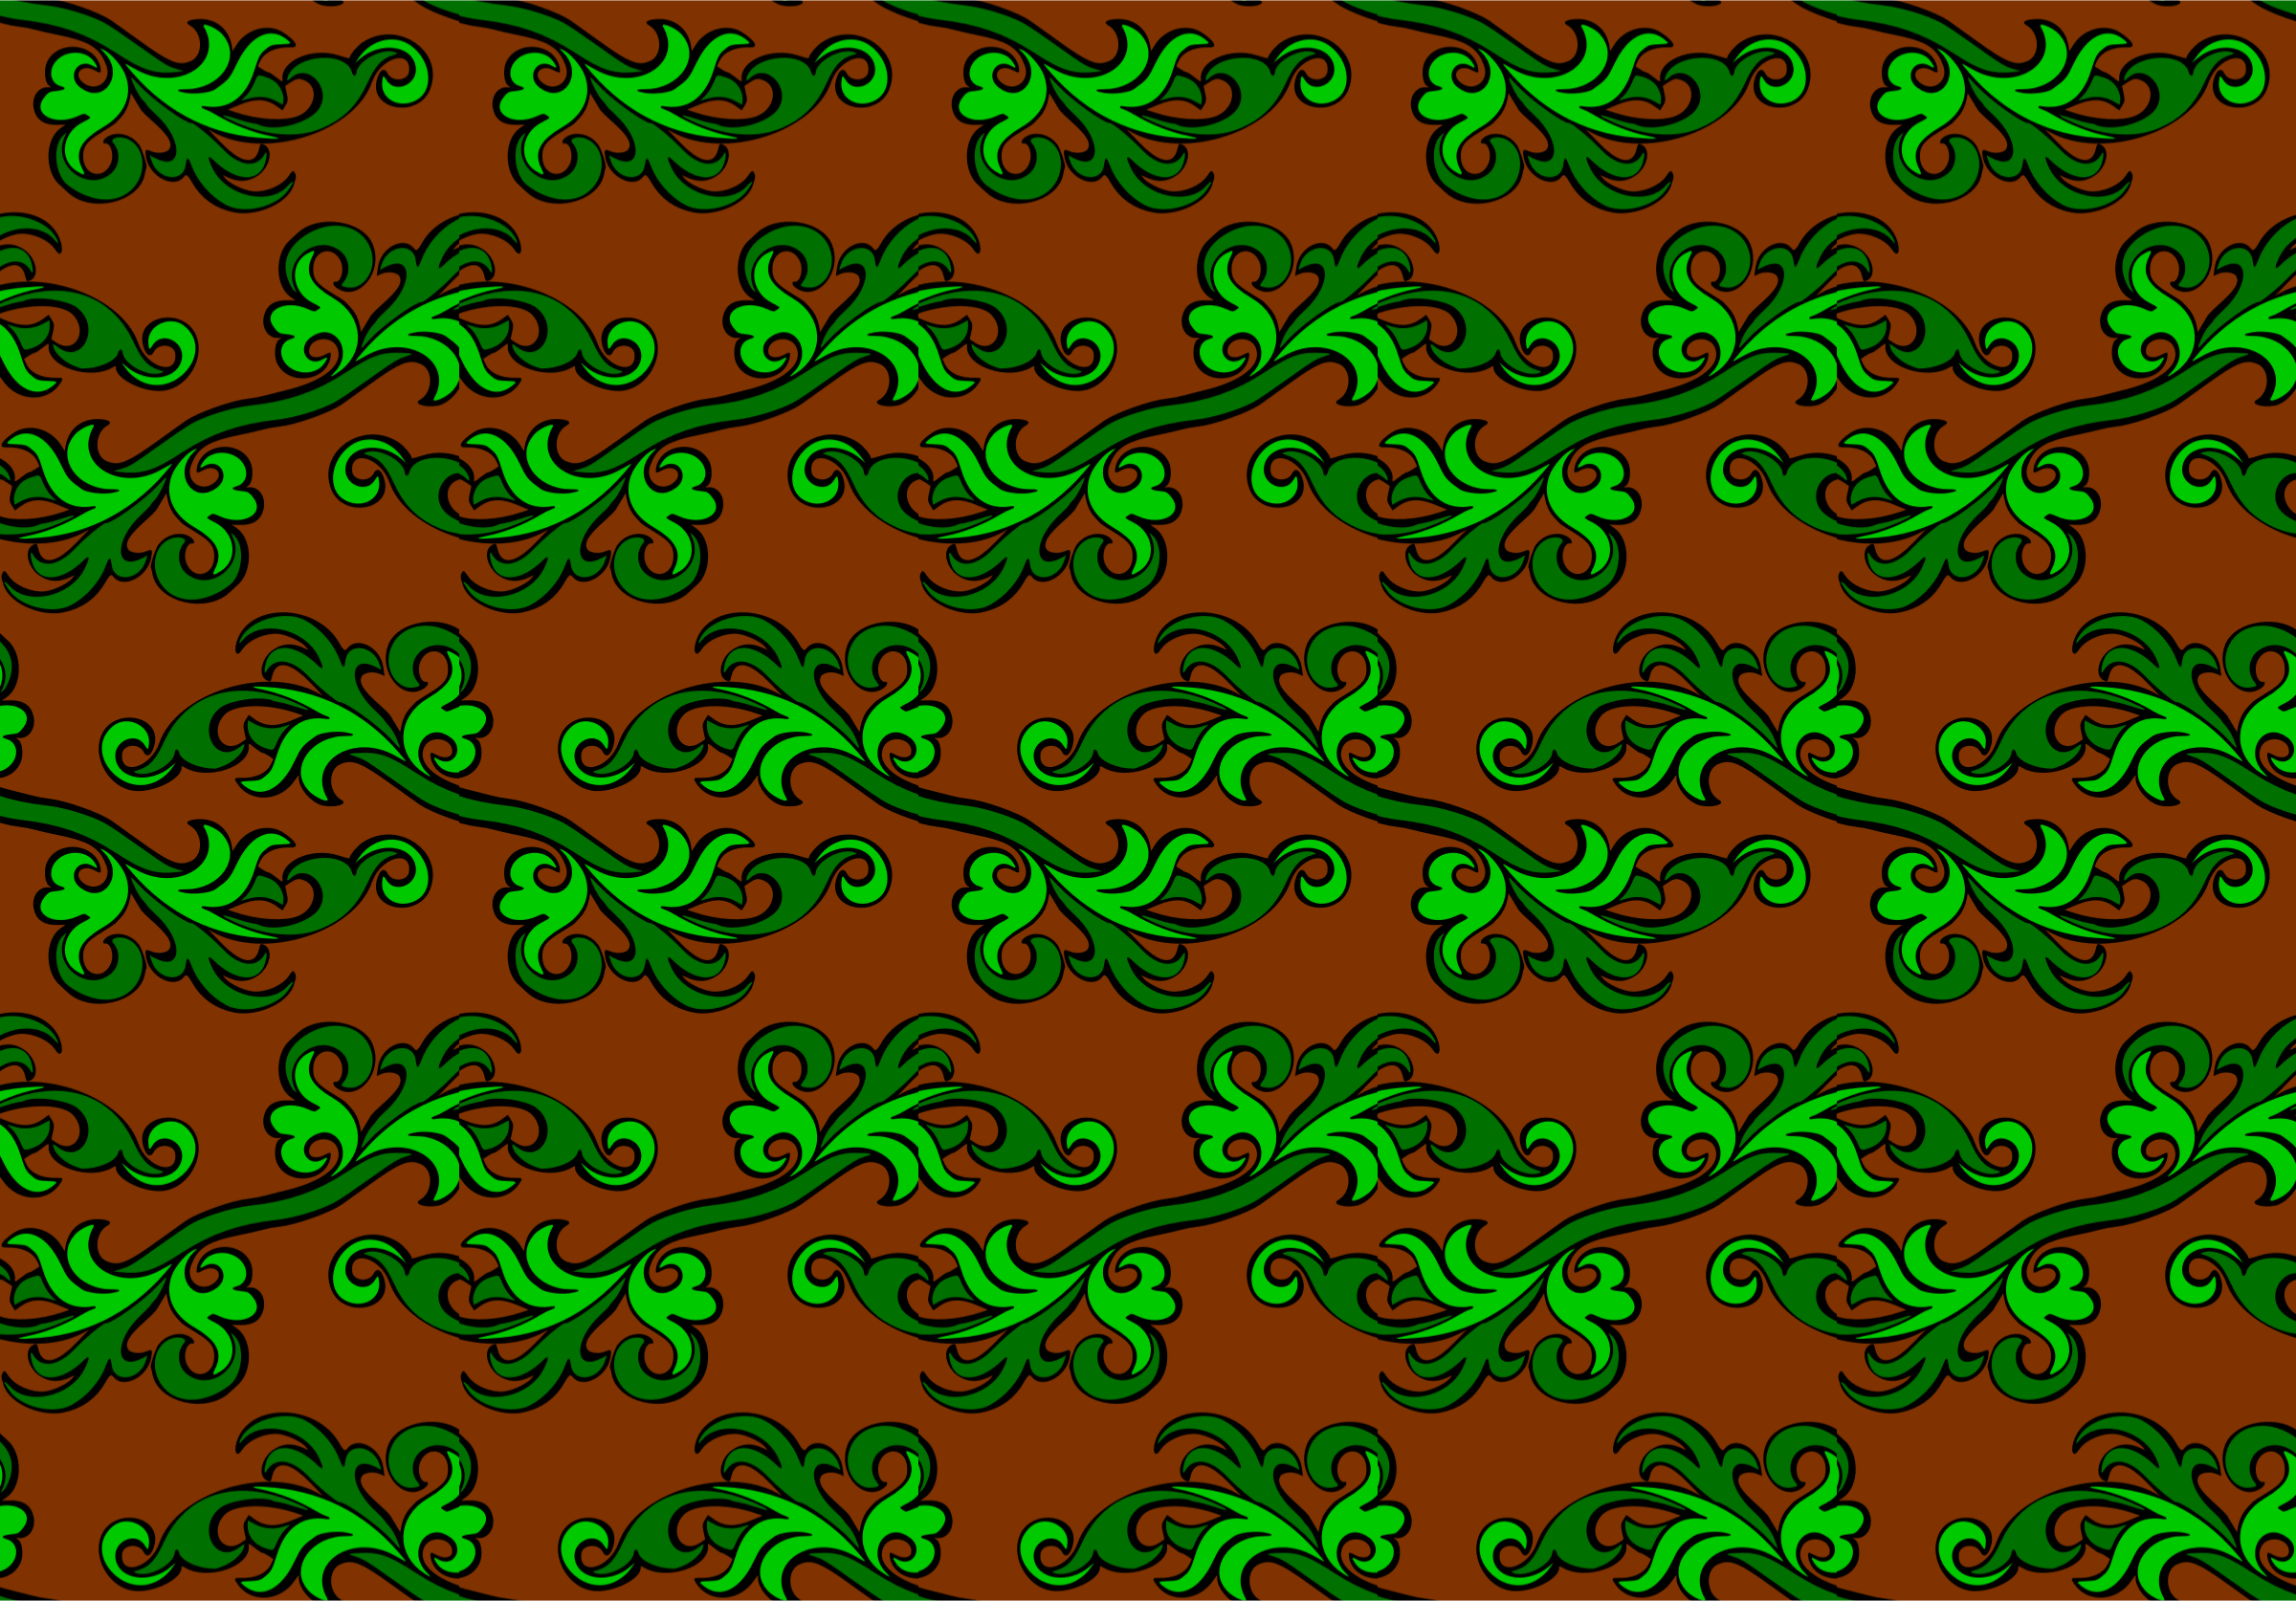 Background pattern 266 (colour) by Firkin